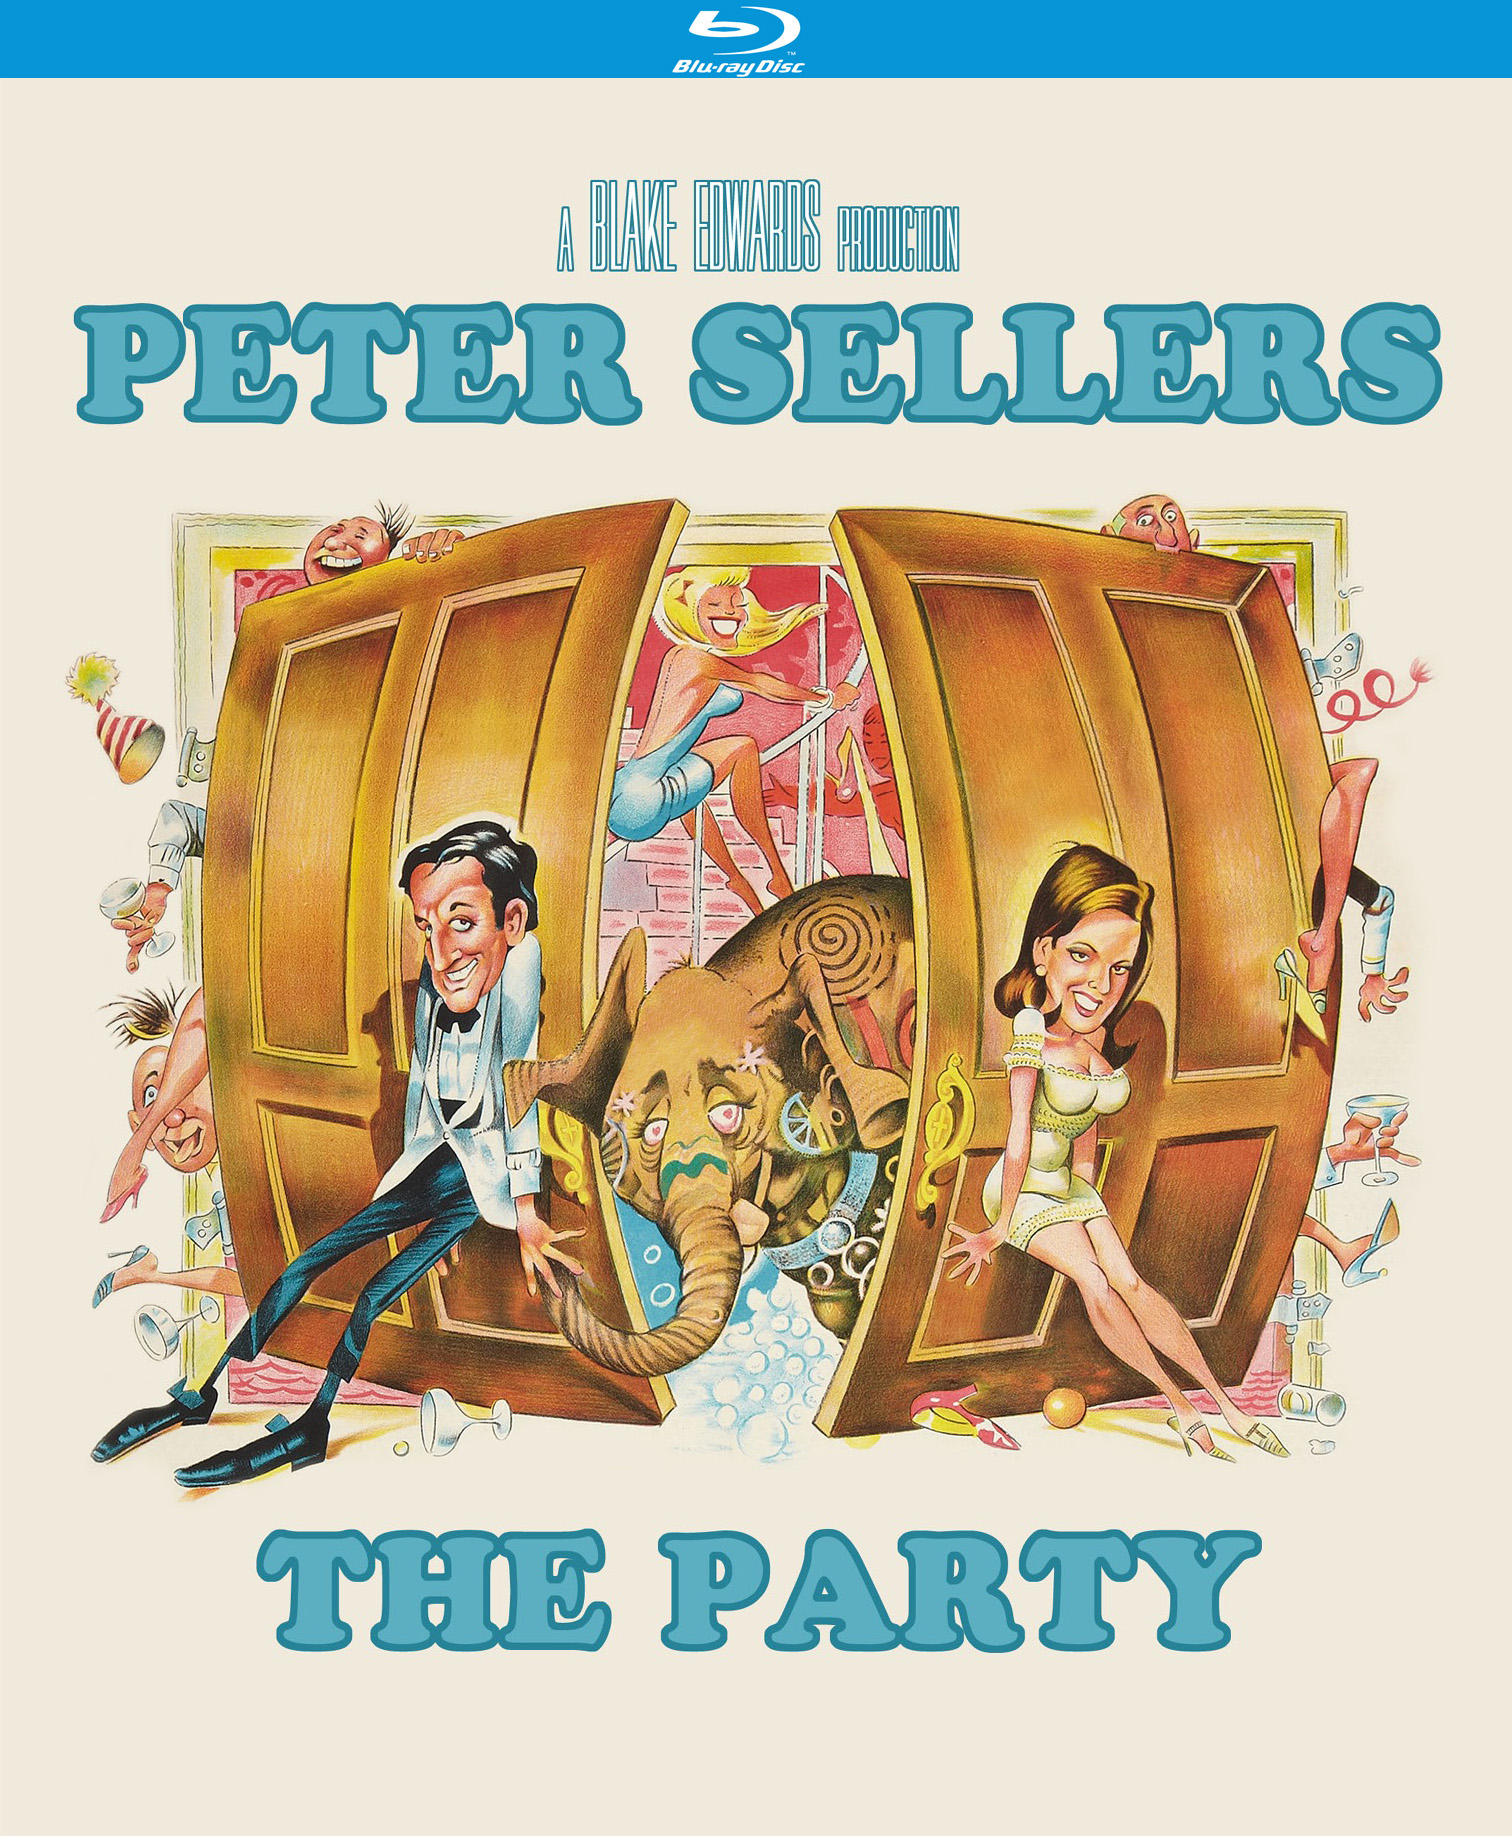 The Party - Kino Lorber Theatrical